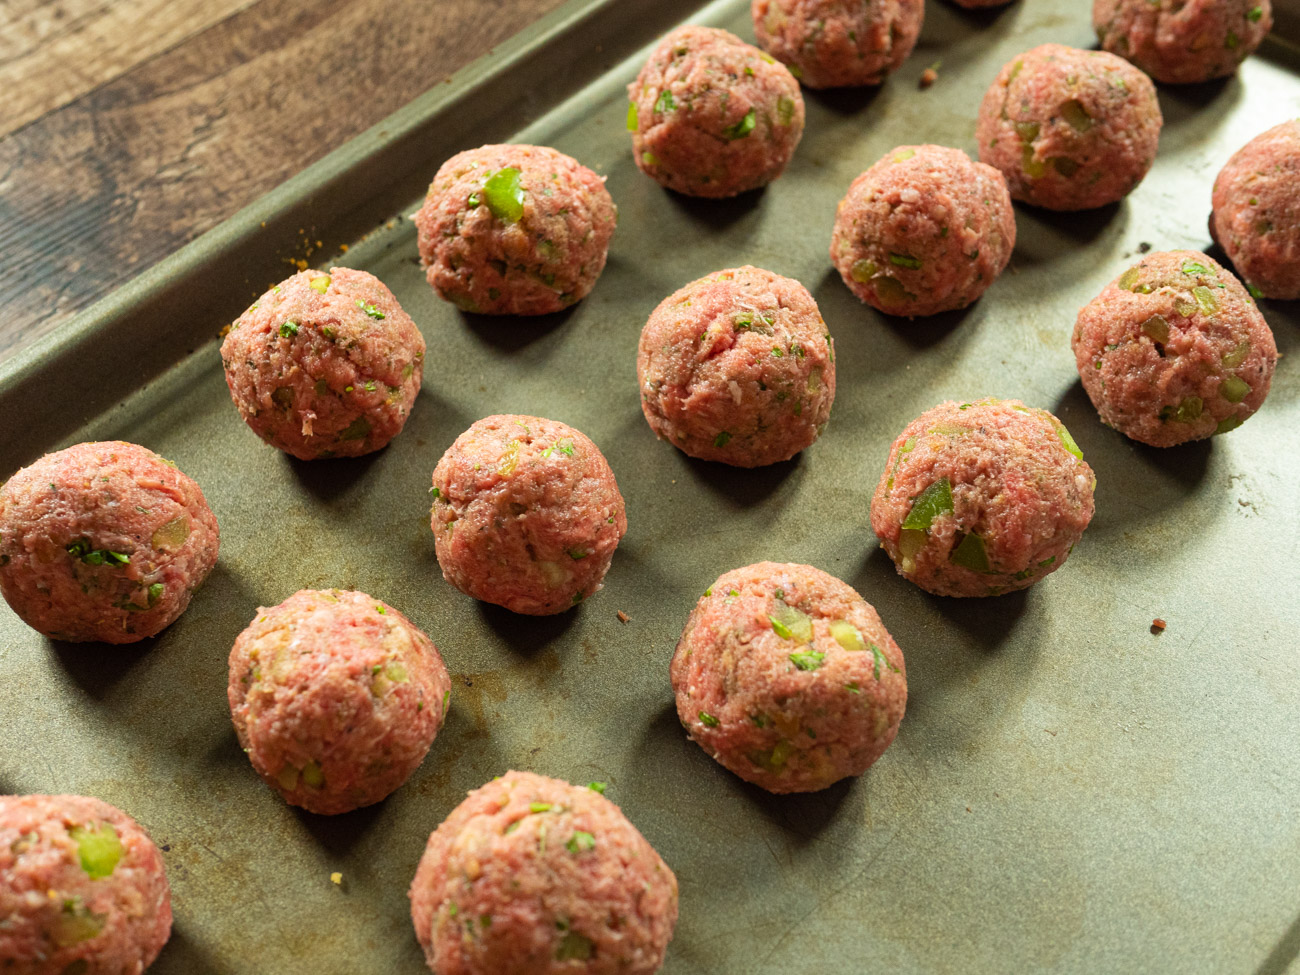 Form into 20 equal meatballs using a small scoop or you hands. Place in single layer on rimmed baking sheet.